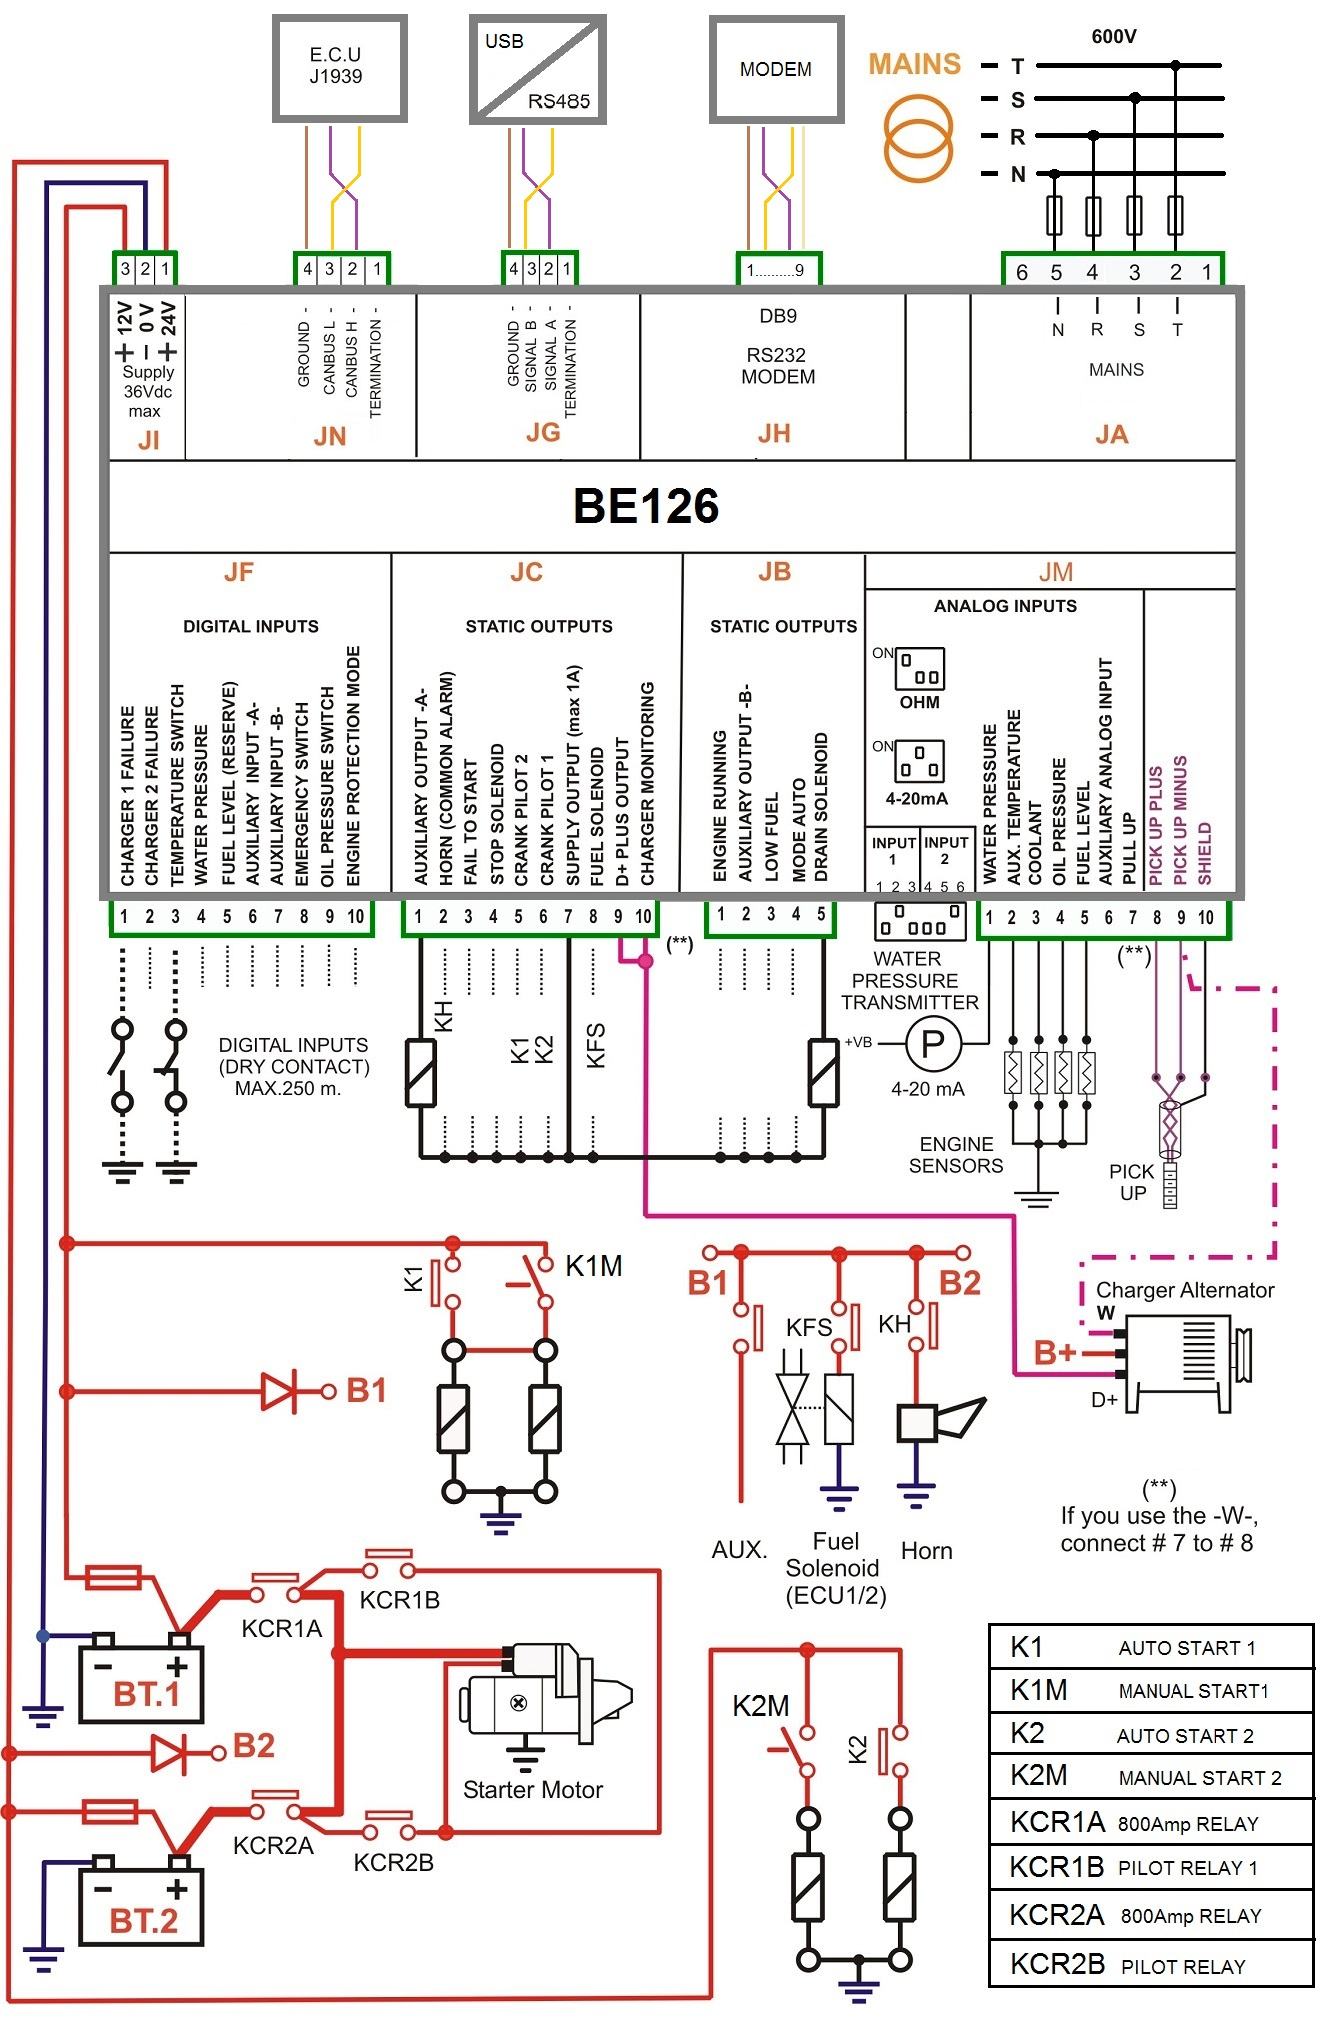 International Truck Fuse Box Diagram Auto Electrical Wiring Dodge Intrepid Ac Get Free Image About Fire Pump Controller U2013 Genset